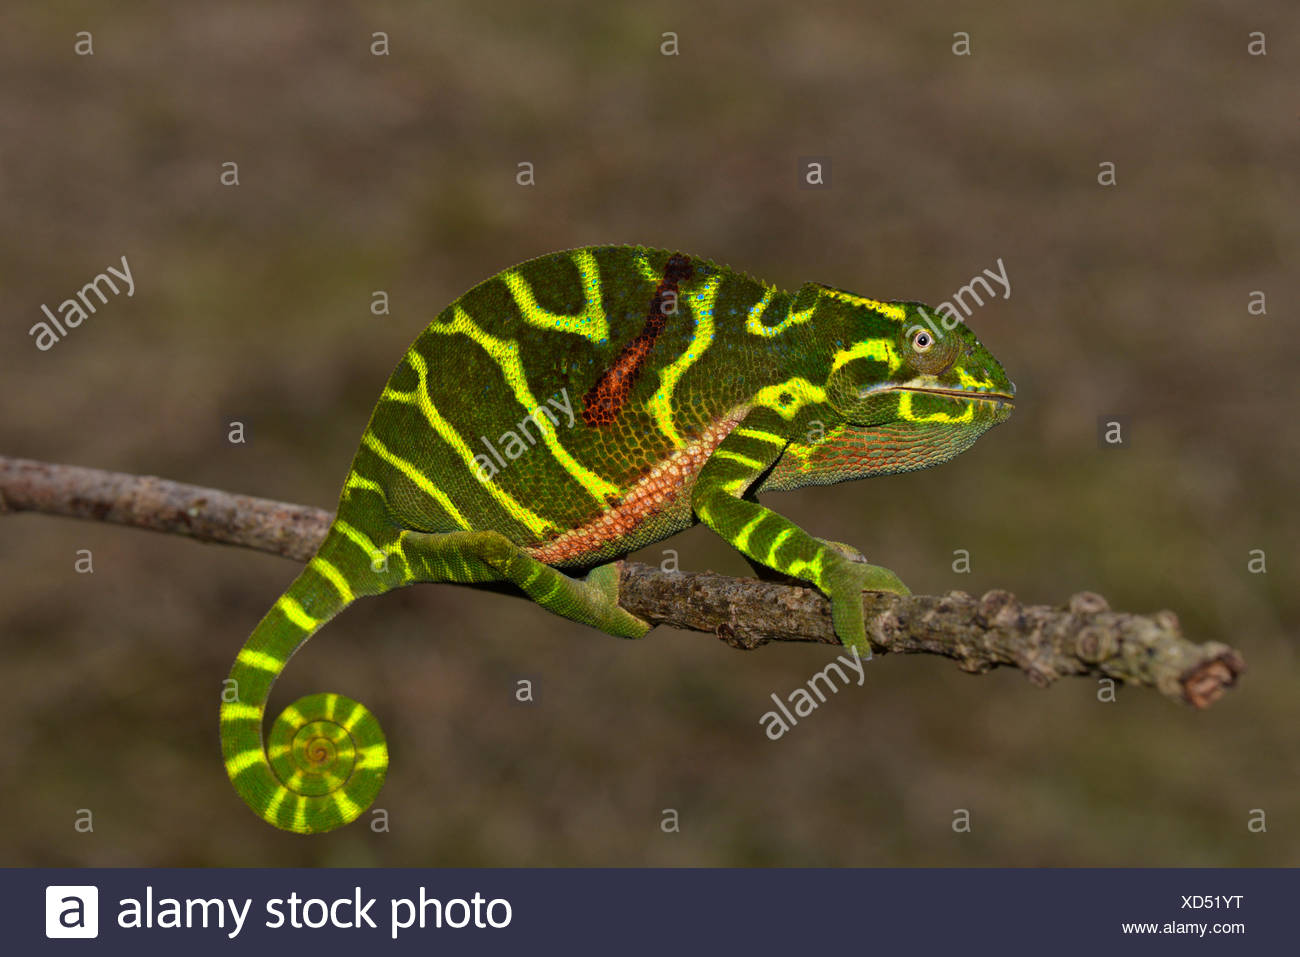 Chameleon of the newly discovered species Furcifer timoni, female, Montagne d'Ambre, Madagascar - Stock Image